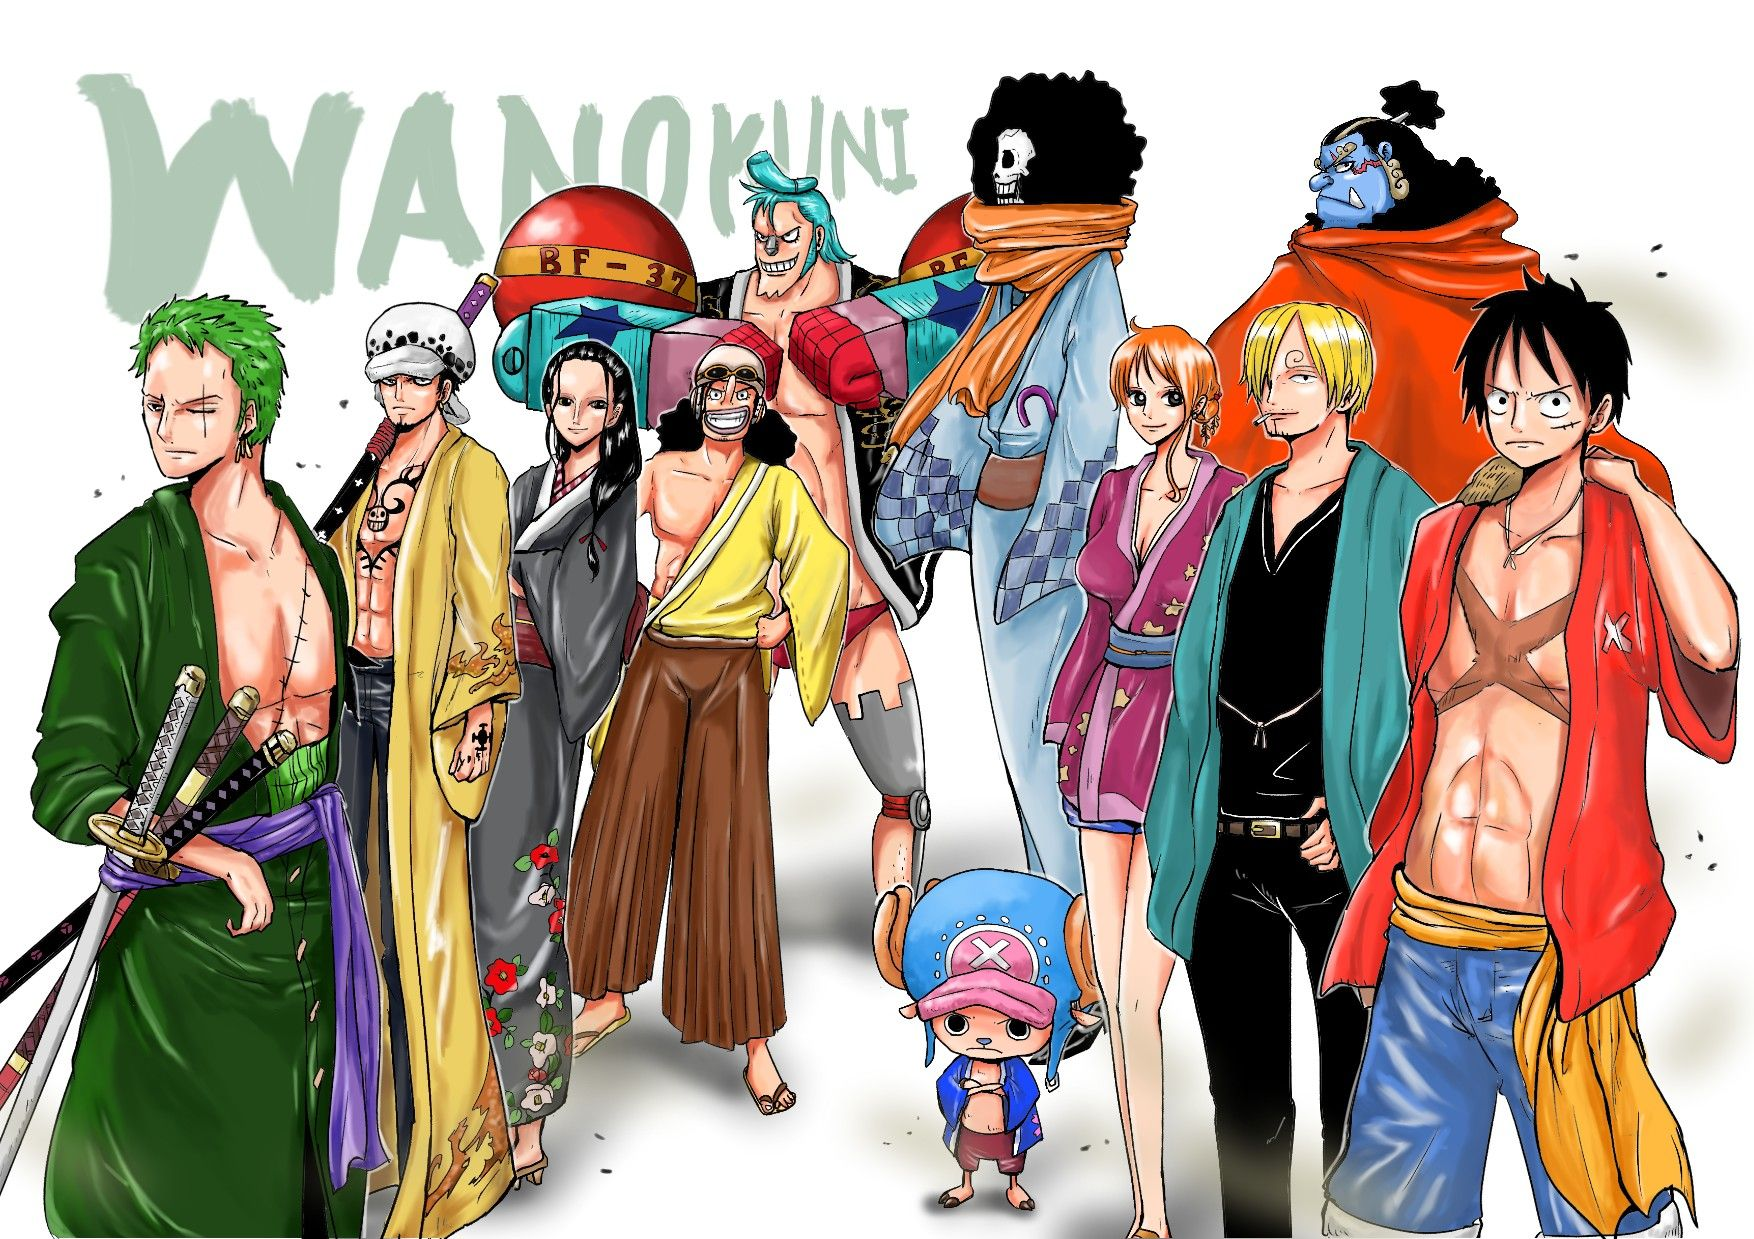 Strawhat Pirates Wano Kuni One Piece One Piece Crew